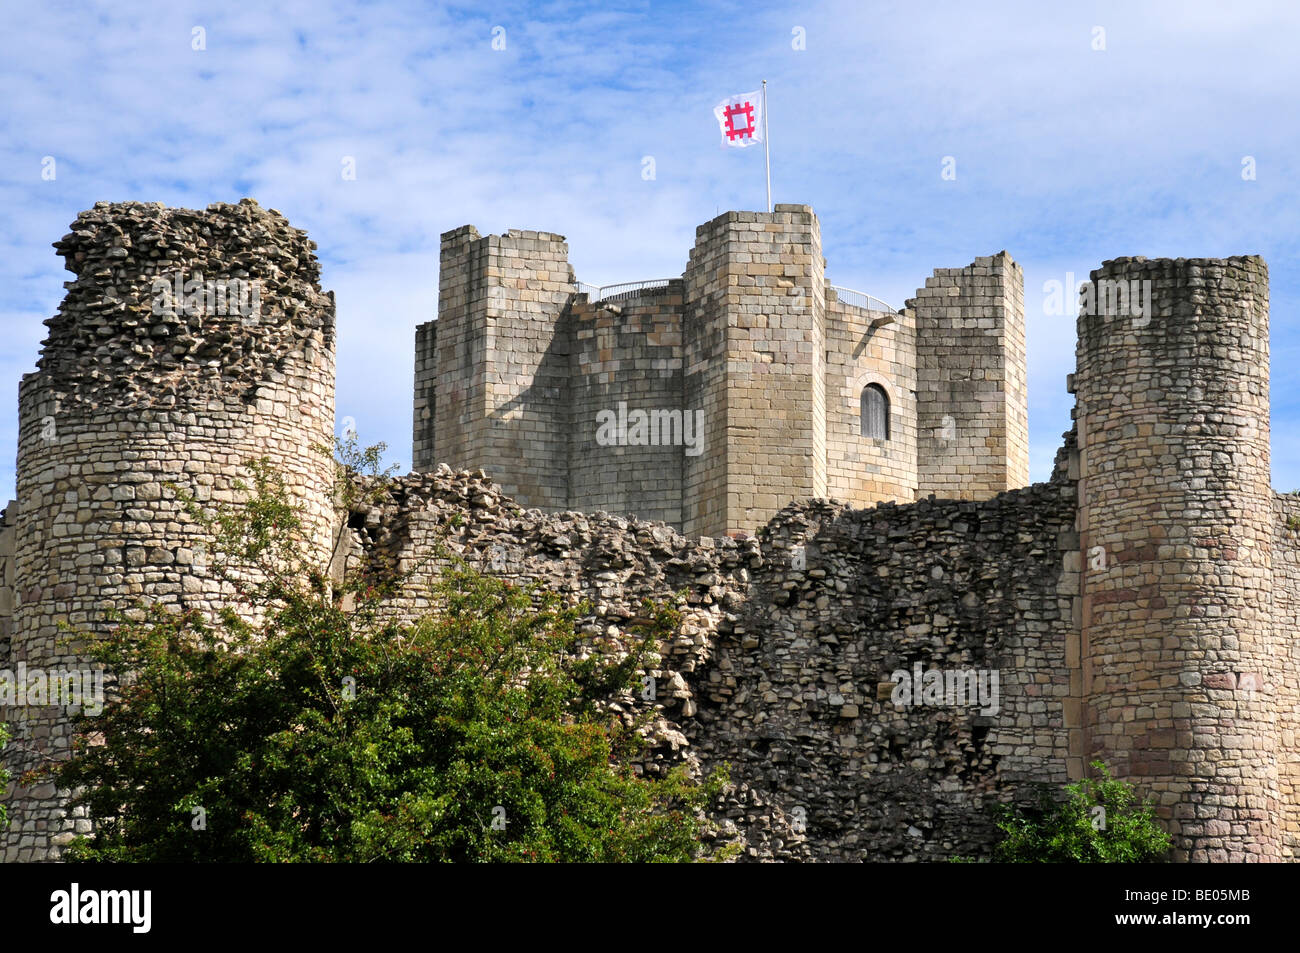 Conisbrough Castle Doncaster South Yorkshire with English Heritage flag flying - Stock Image